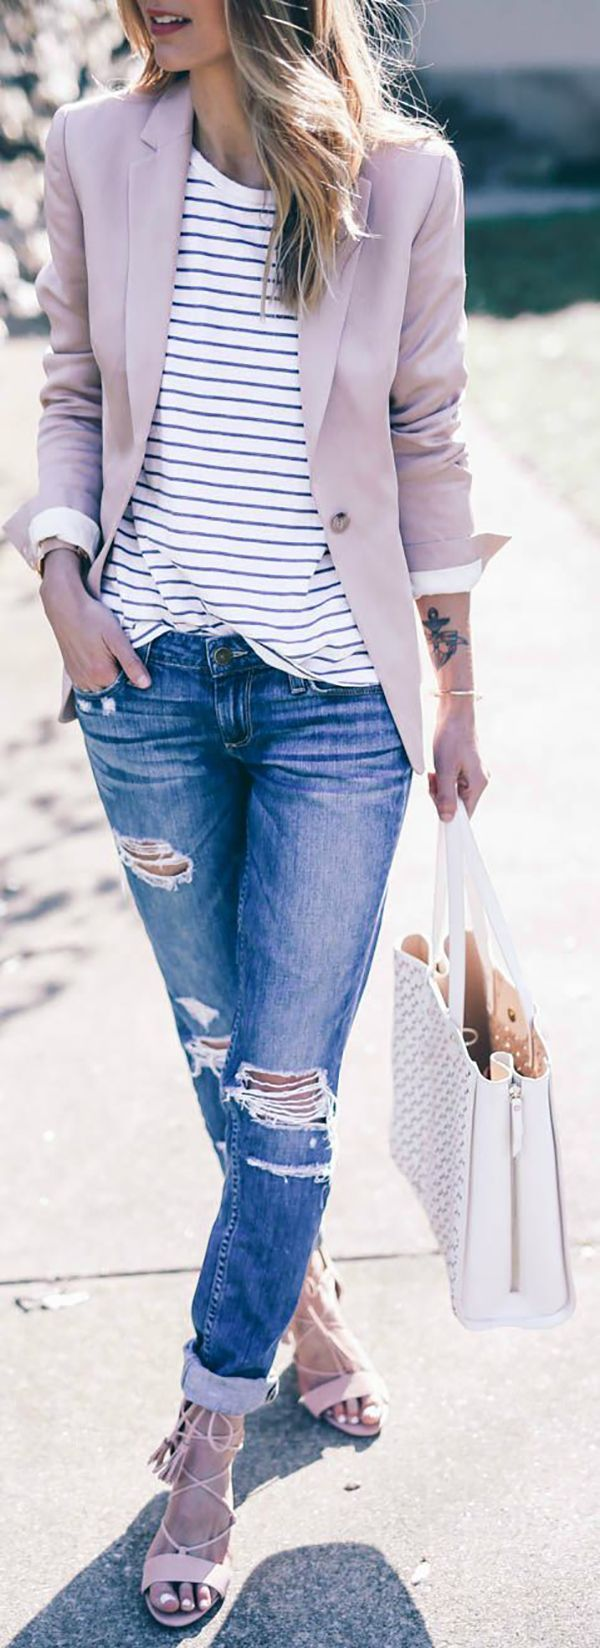 love this look, minus the overly distress jeans. A little distress, ok, but geez…